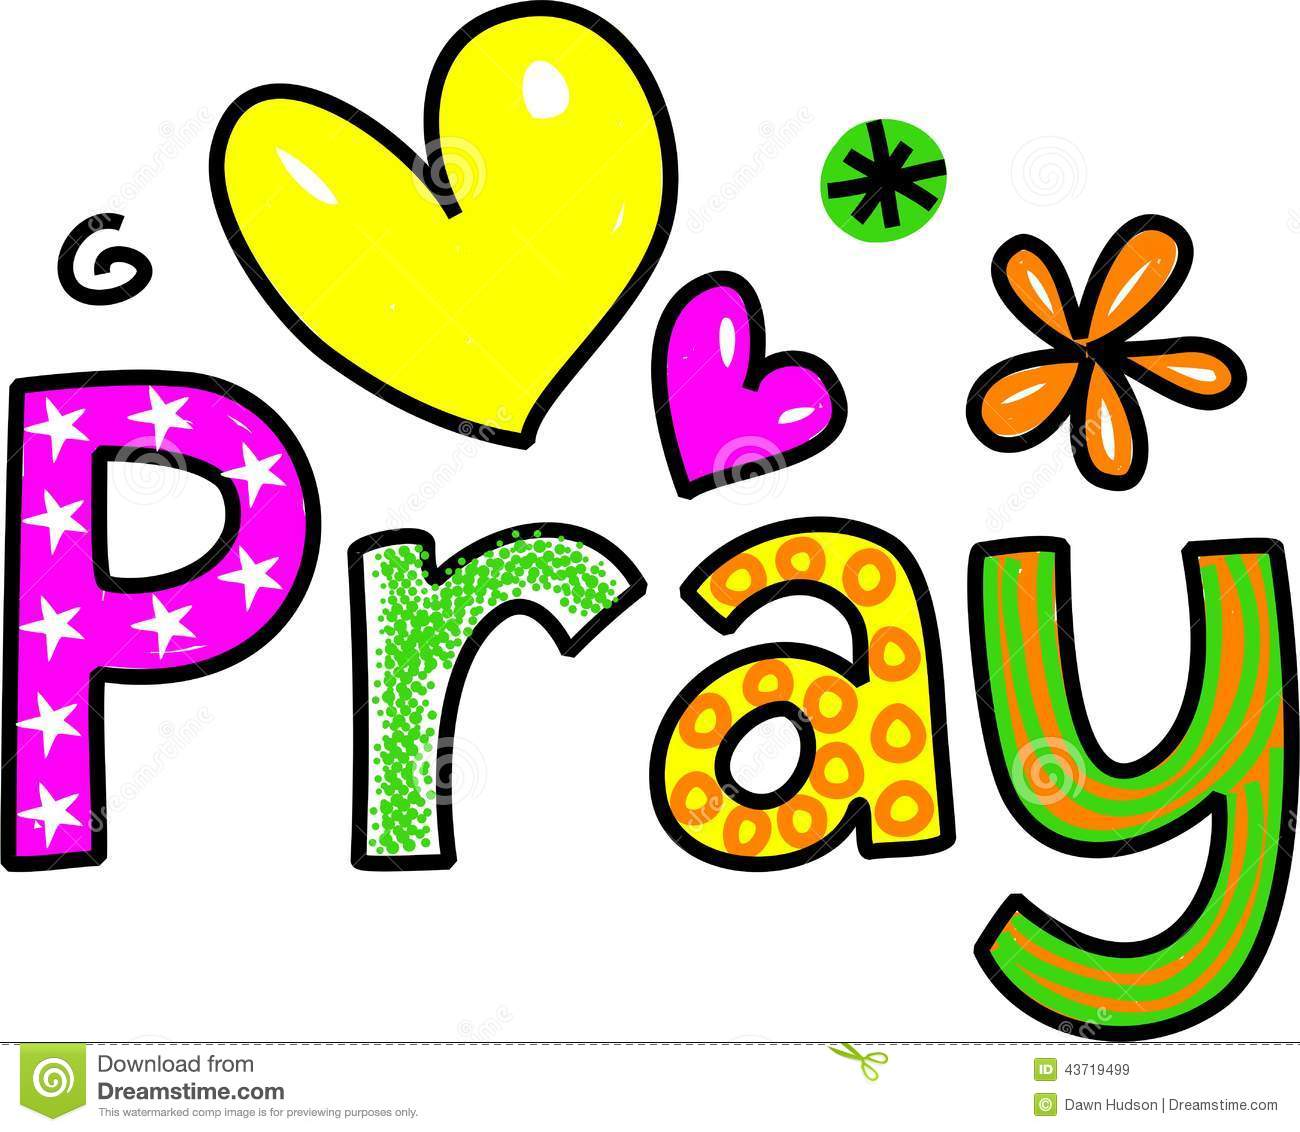 Free prayer clipart images 5 » Clipart Station.